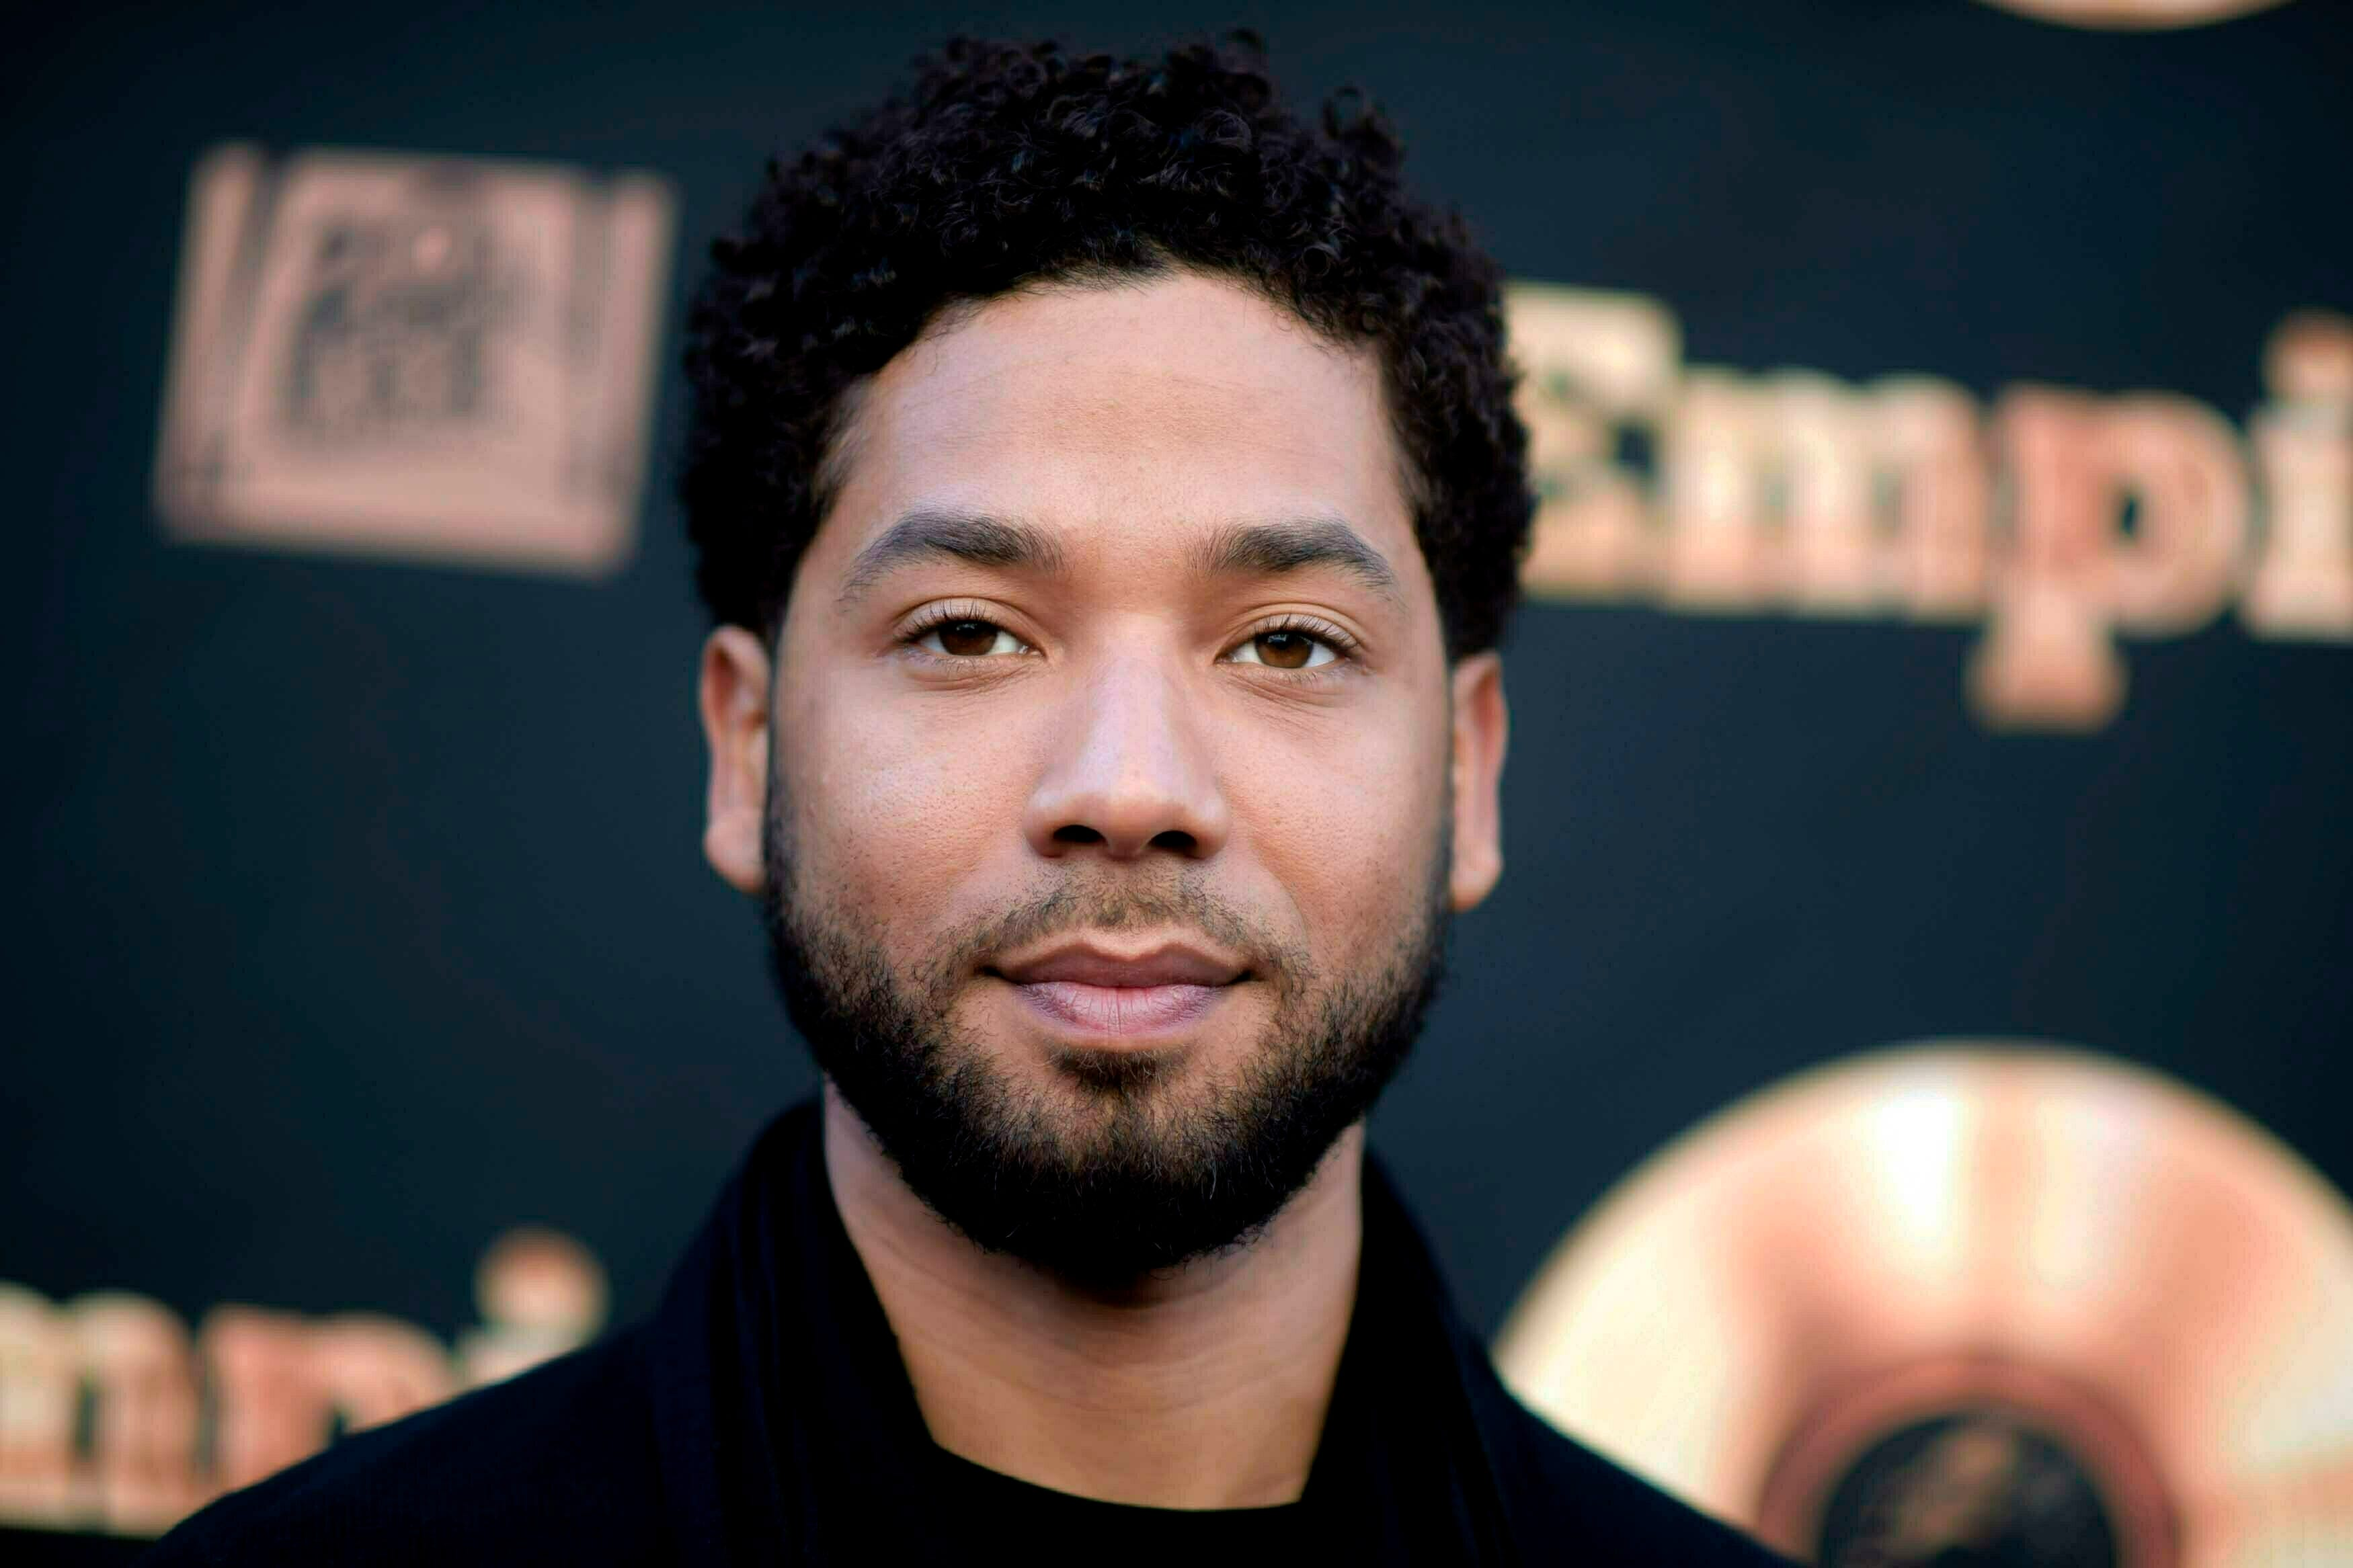 Jussie Smollett turns himself in on claim of making false police report, Chicago police say